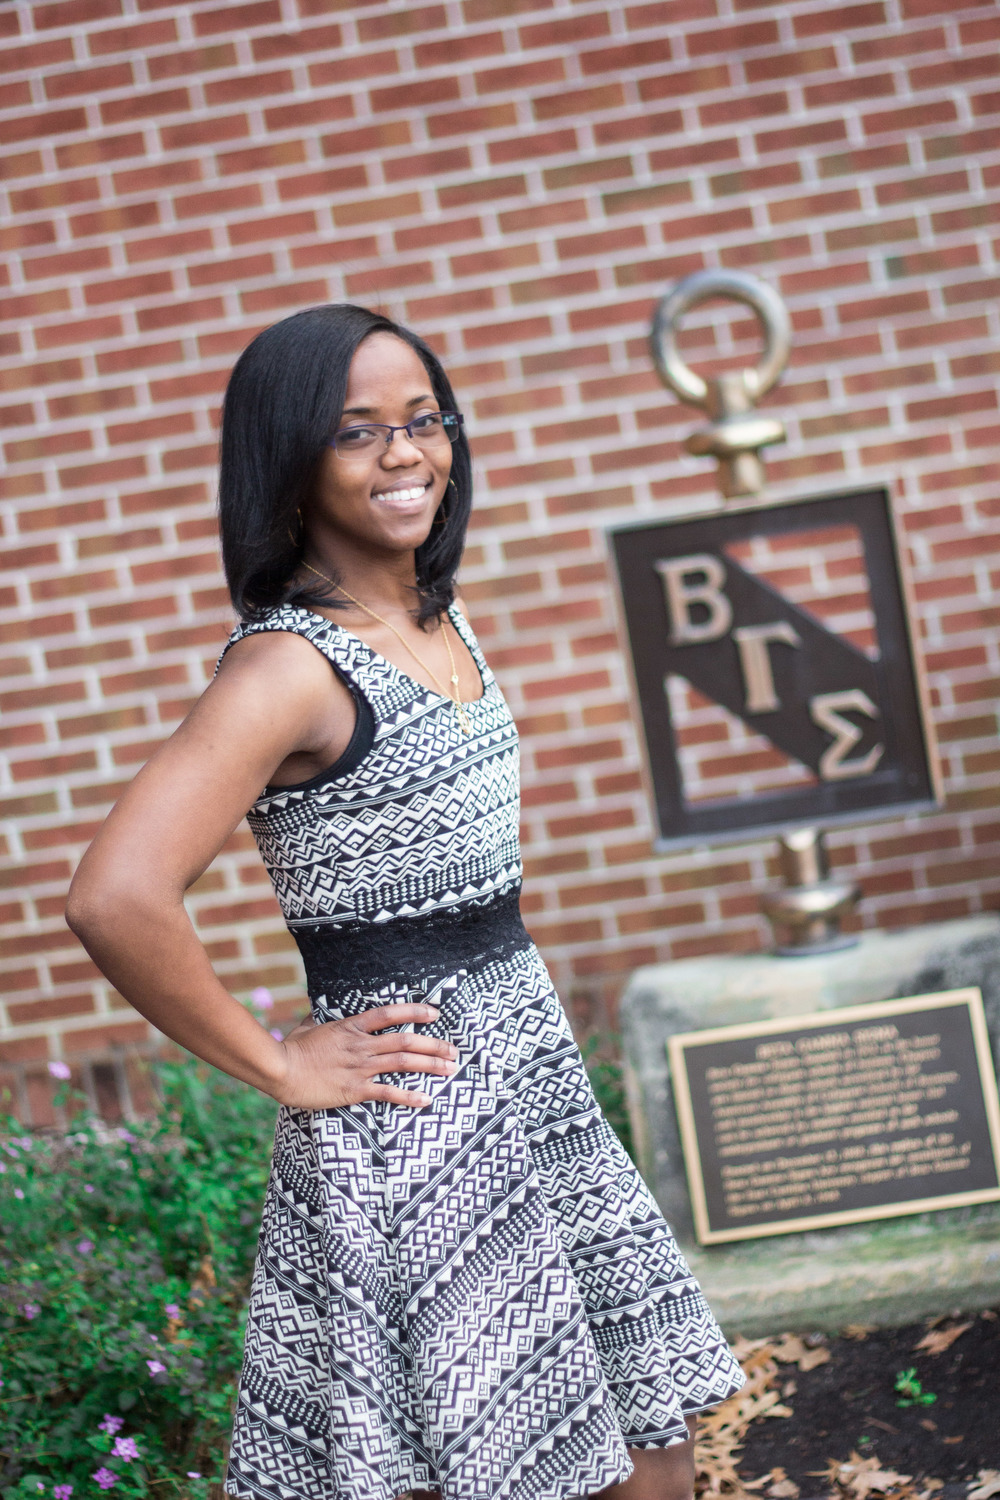 bryant-tyson-photography-jasmine-ecu-senior-2014-greenville-nc-photography